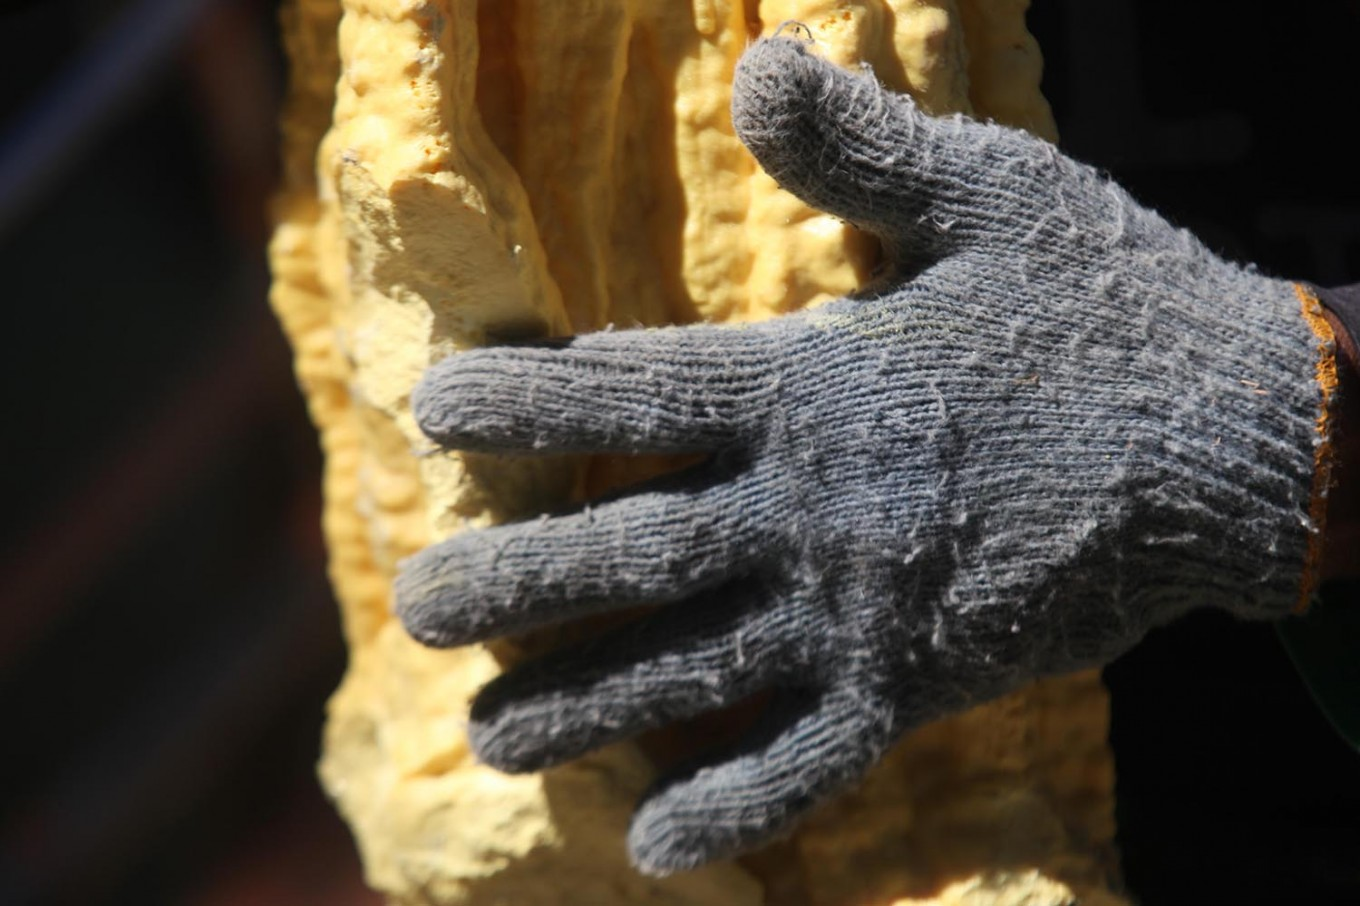 A close-up of a sulfur chunk and a miner's glove. JP/Boy T Harjanto